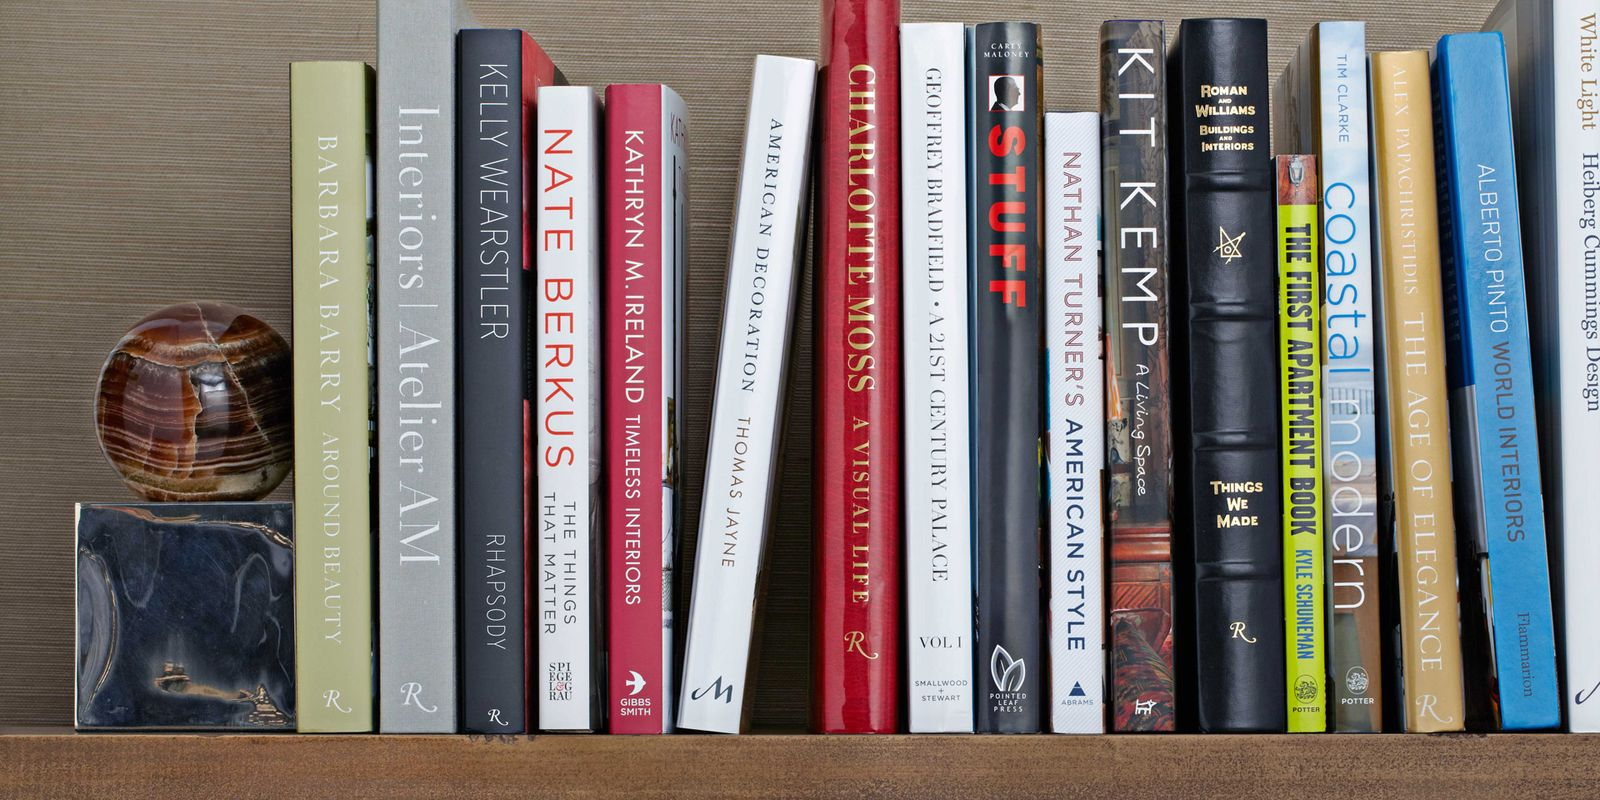 Best new design books of 2013 new interior design books for Interior design books